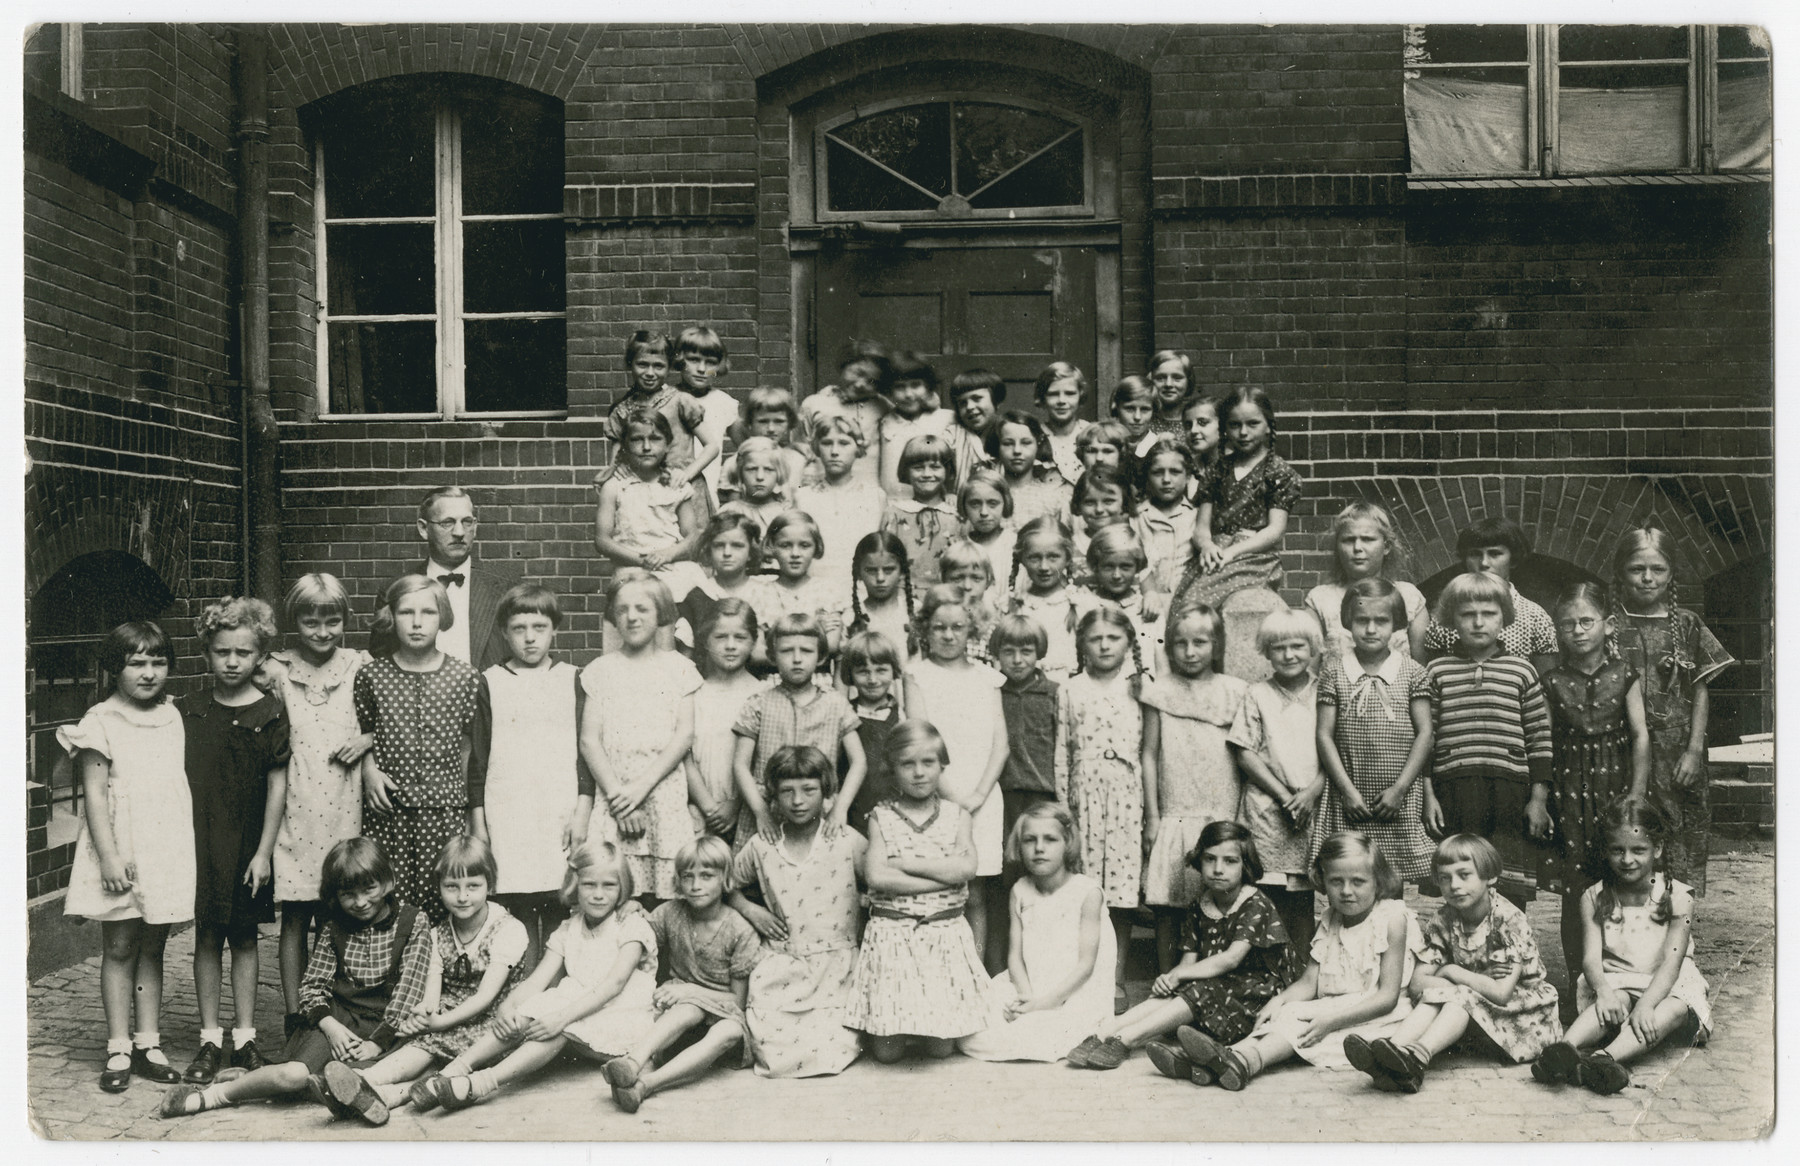 Group portrait of school girls in the Leobschuetz elementary school.            Among those pictured is Ilse Oschinsky (second from left in front row).  The teacher is Karl Teichmann.